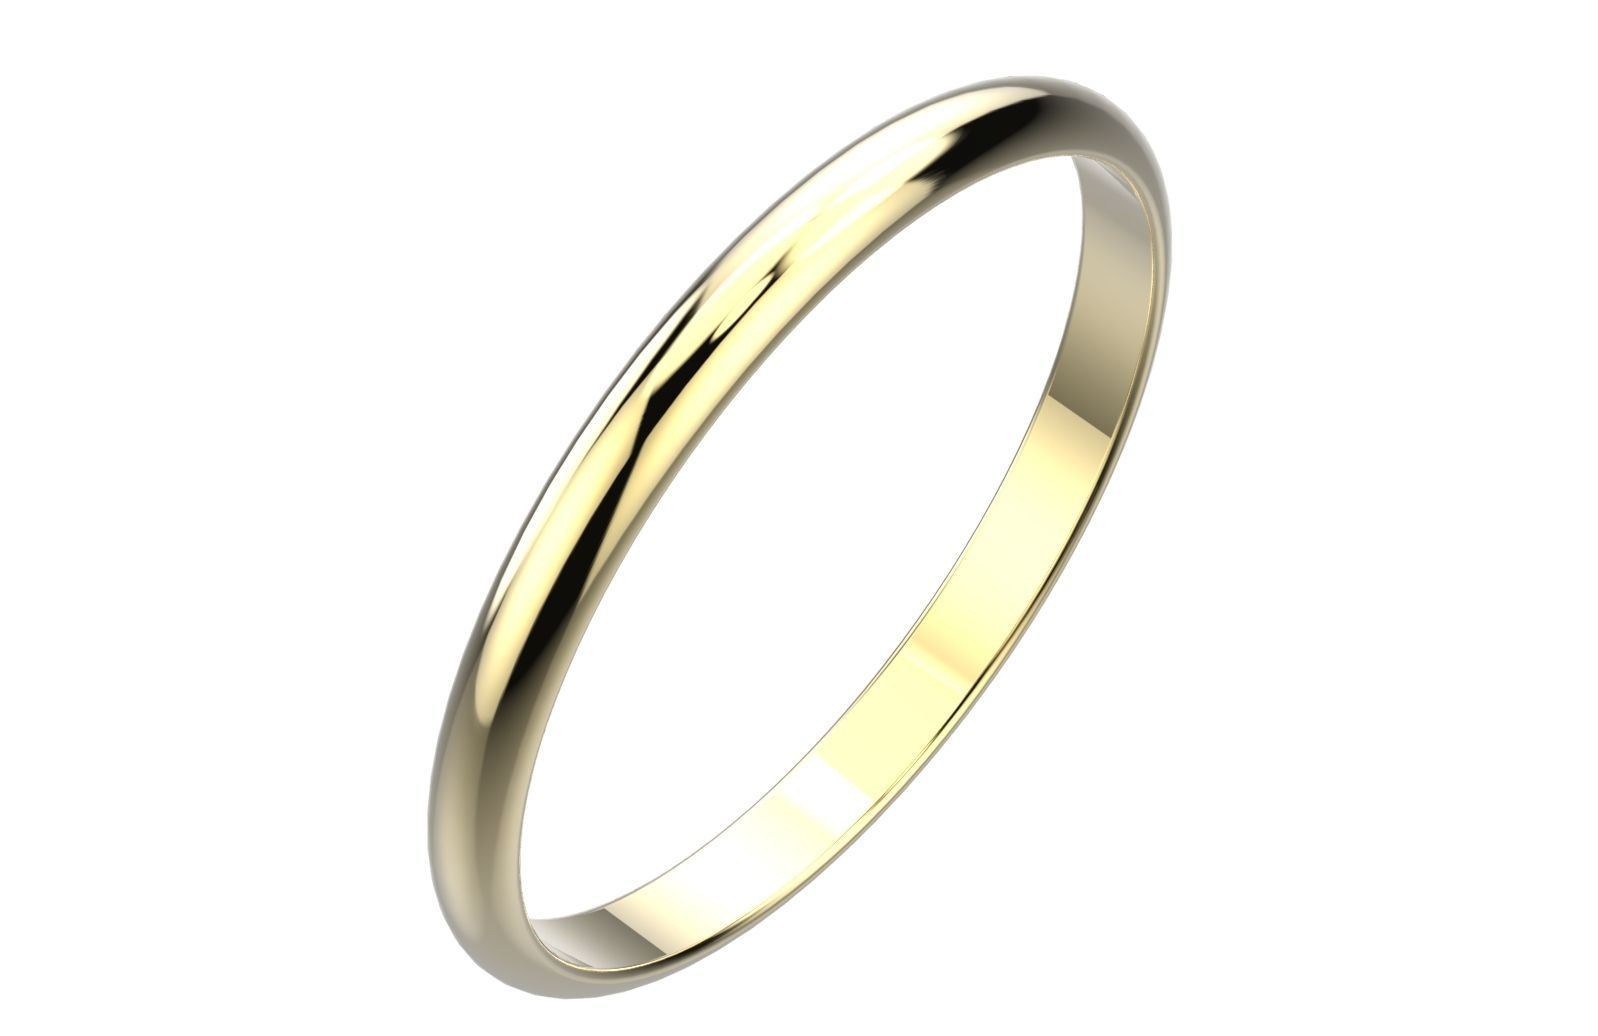 st-germain-2mm-bague-or-jaune-sans-pierre-bague-persp-01-gemmyo_2